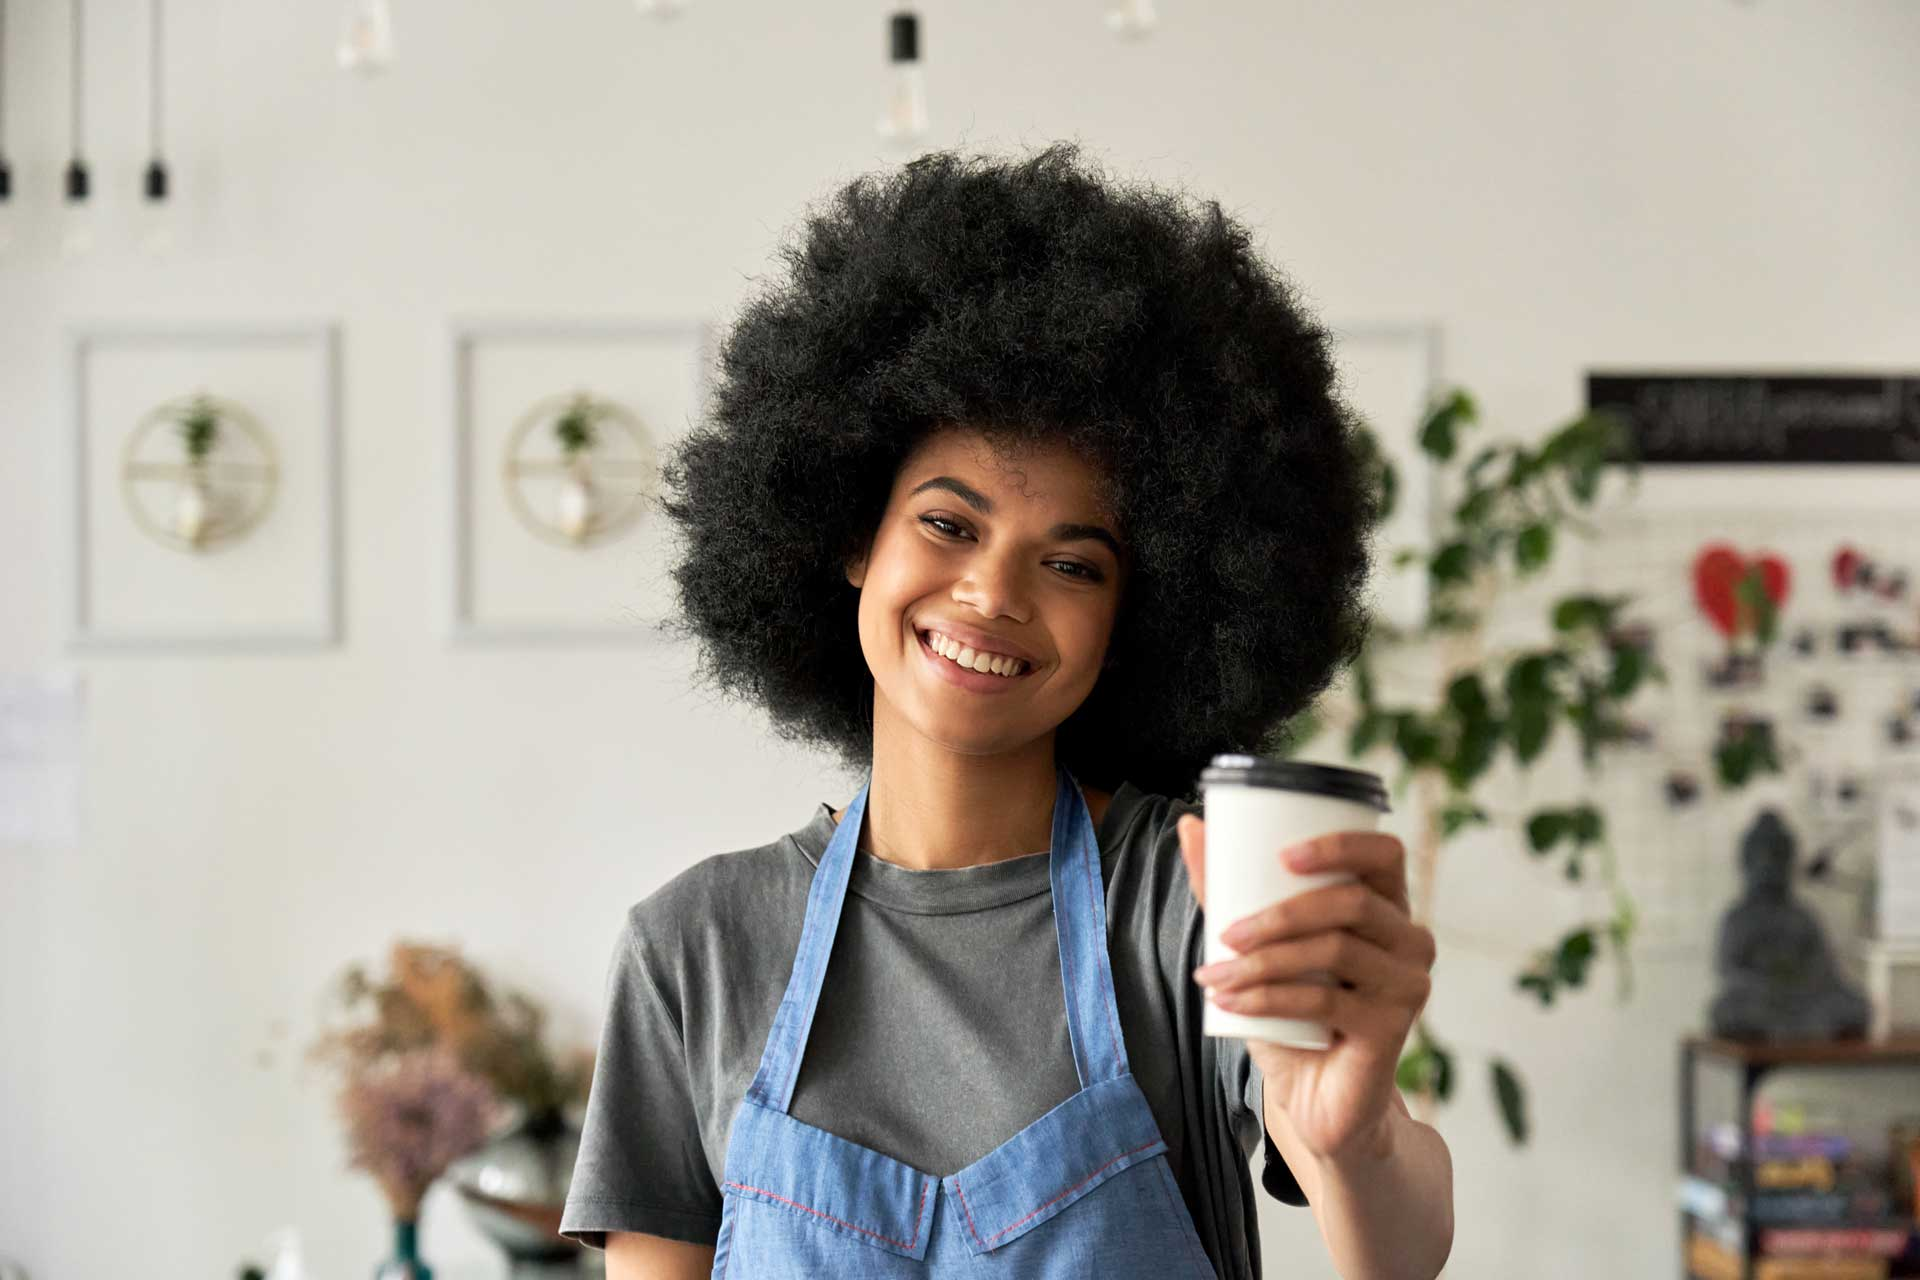 Smiling cafe server with biodegradable coffee cup